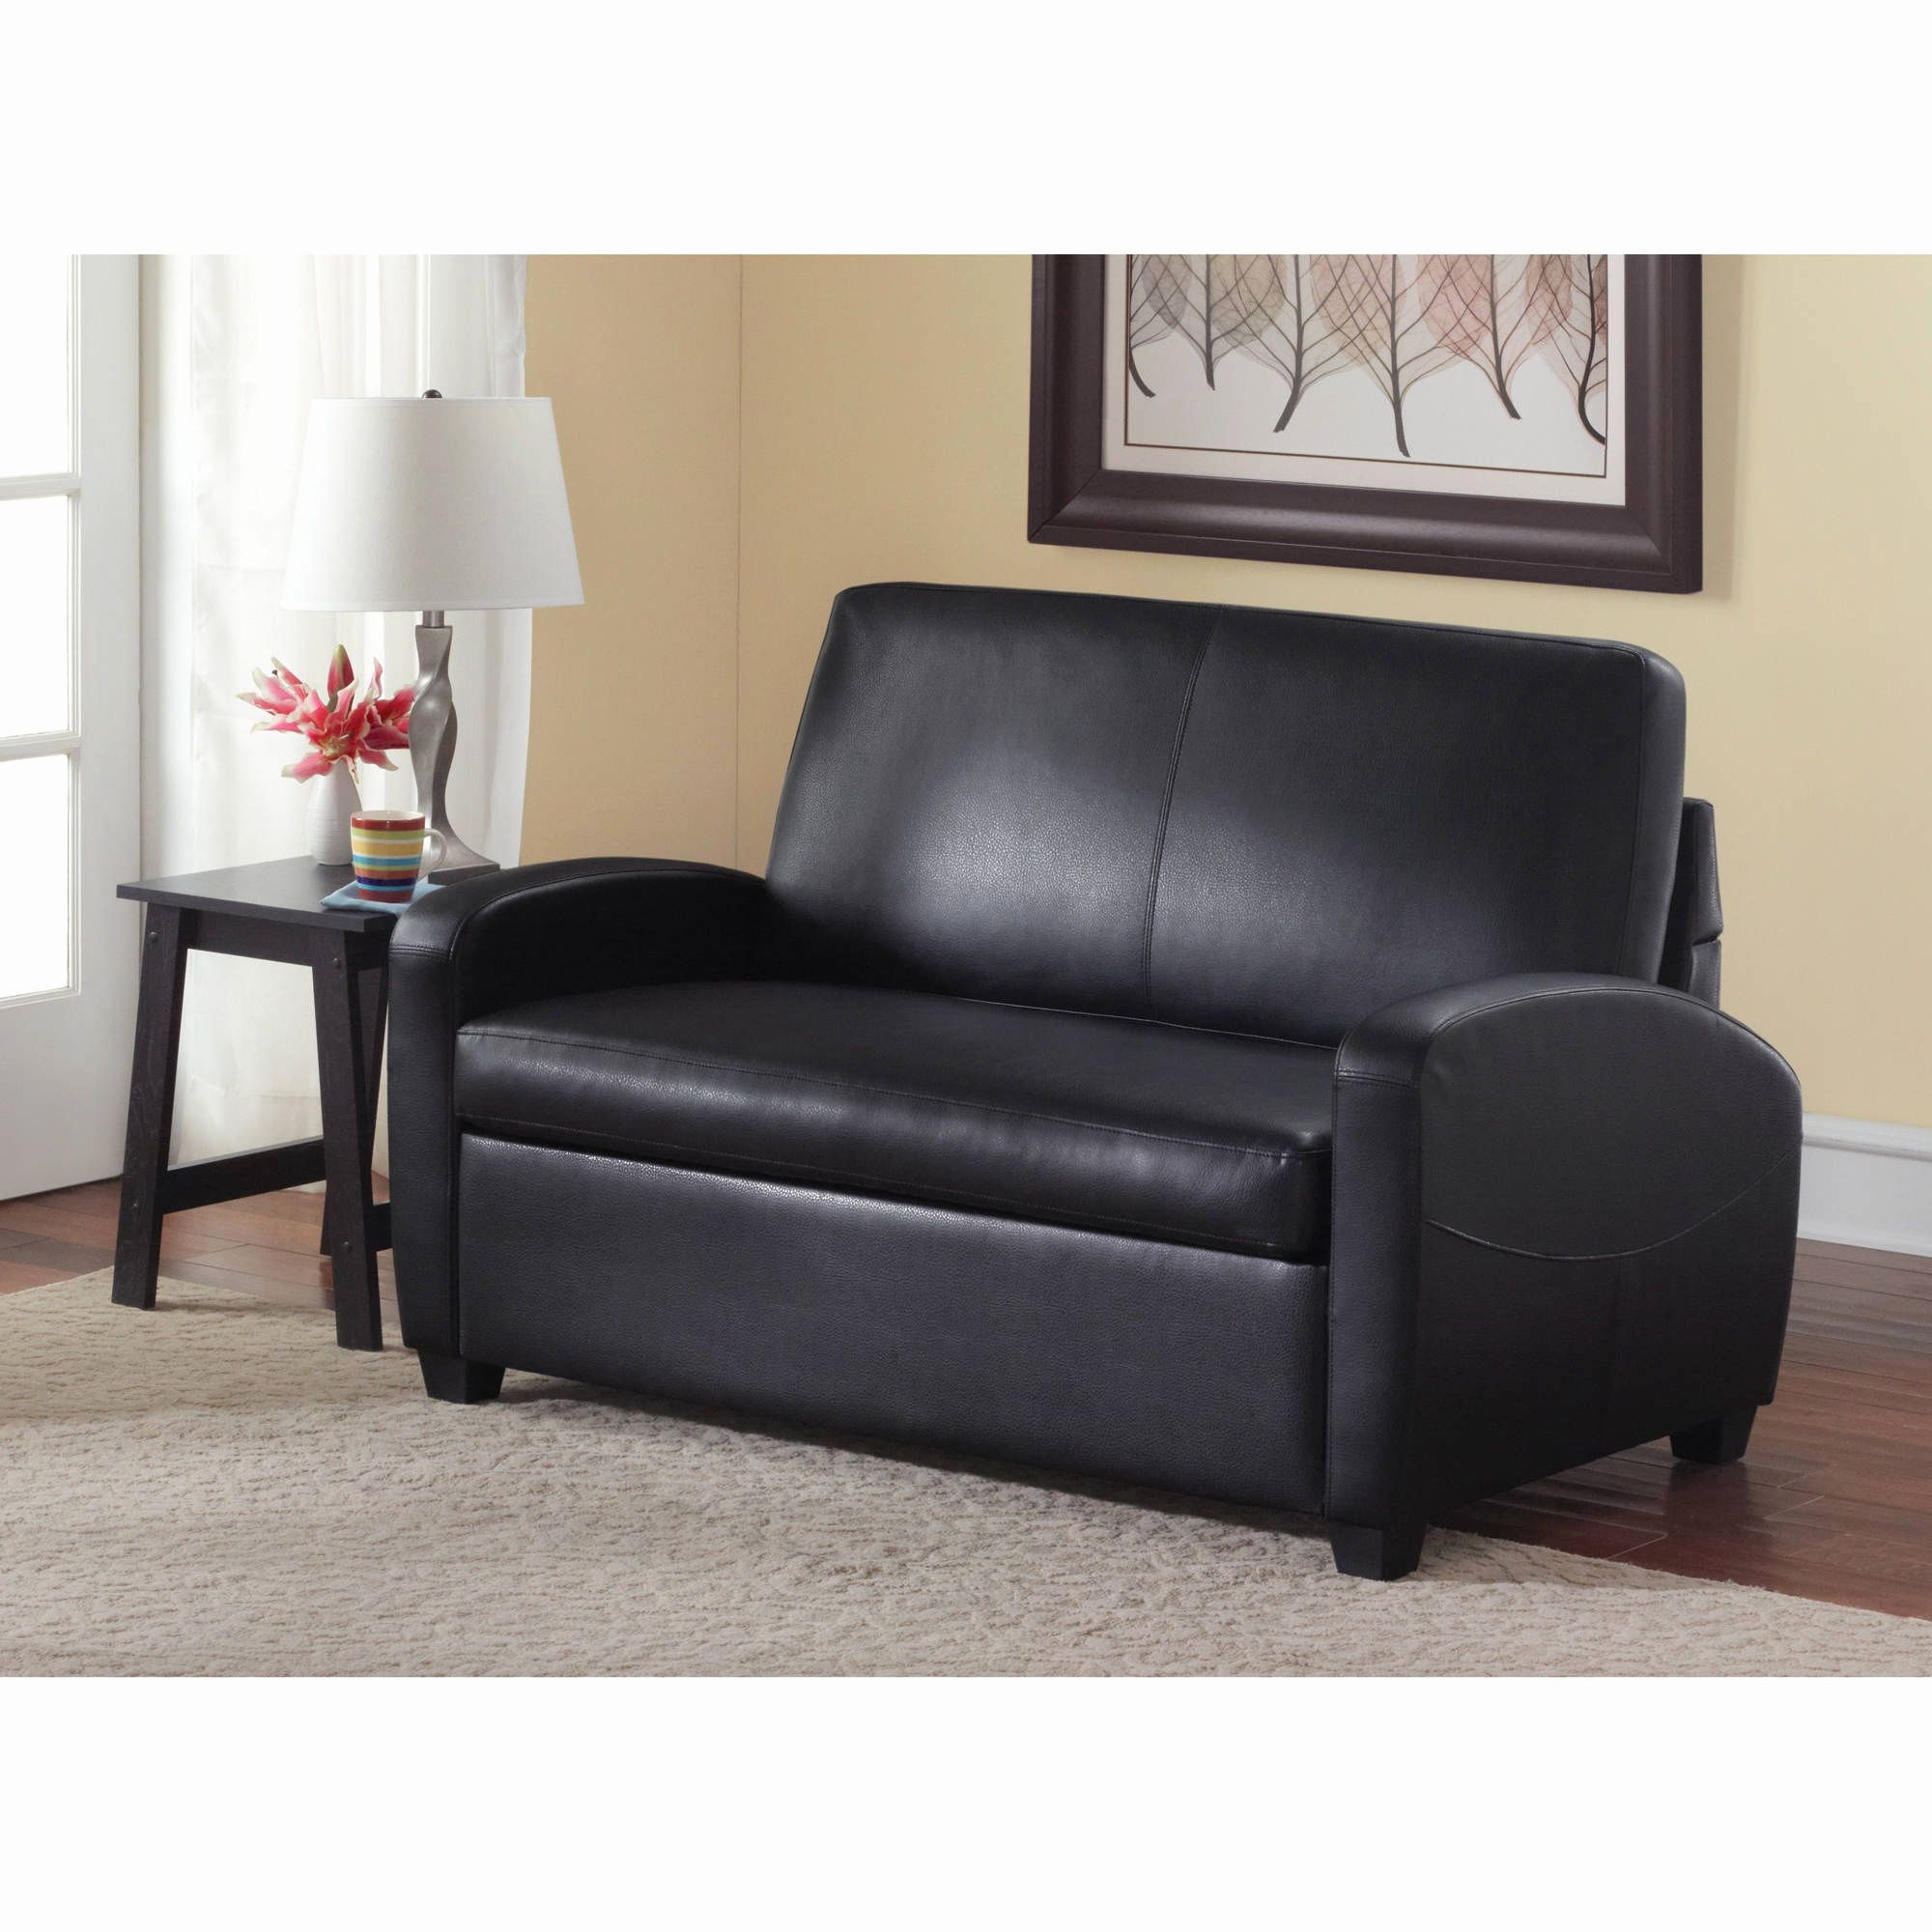 products microfiber couch black itm folding best choice ebay sofa bed futon